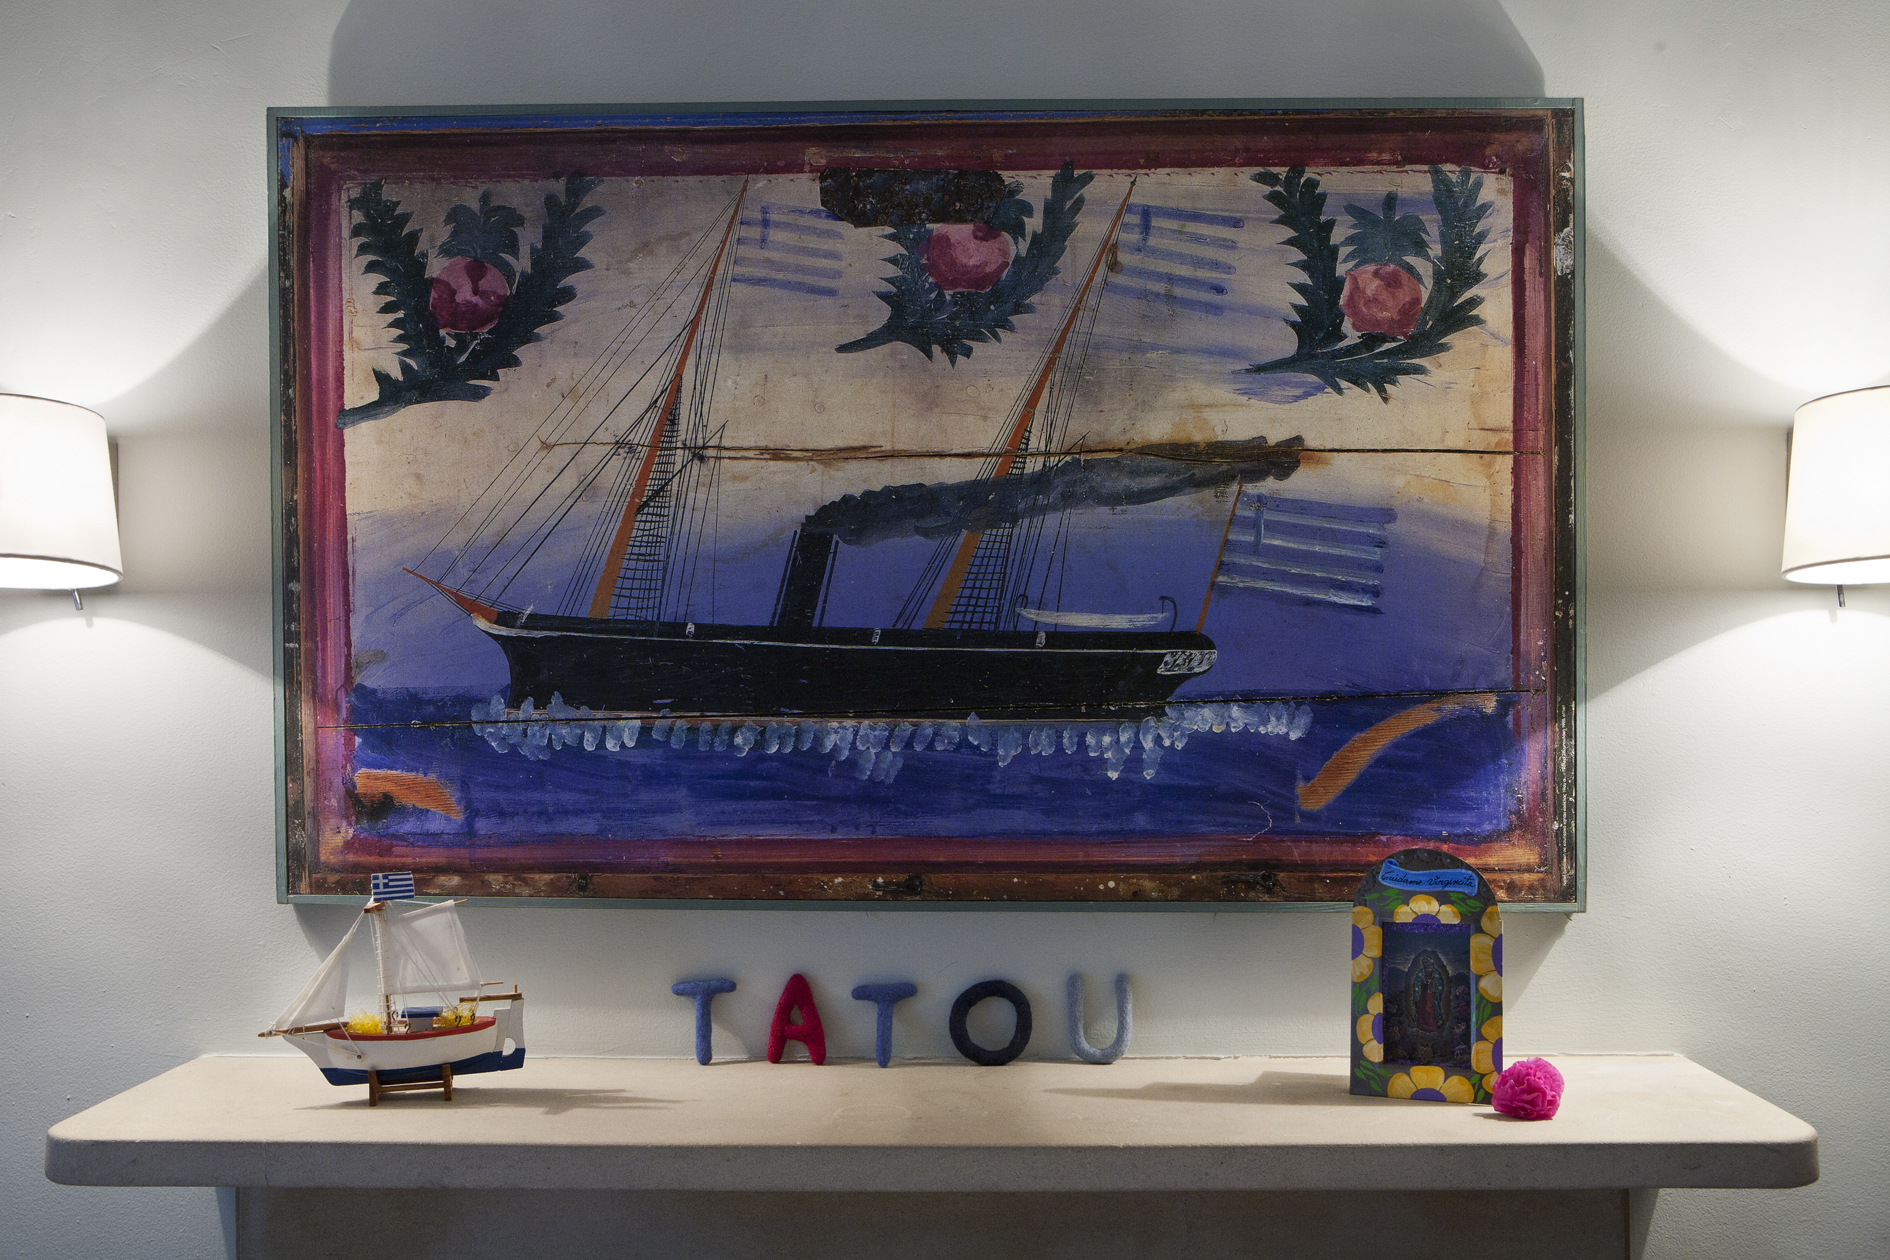 The boat painting originally hung in the bedroom belonging to the girls' father